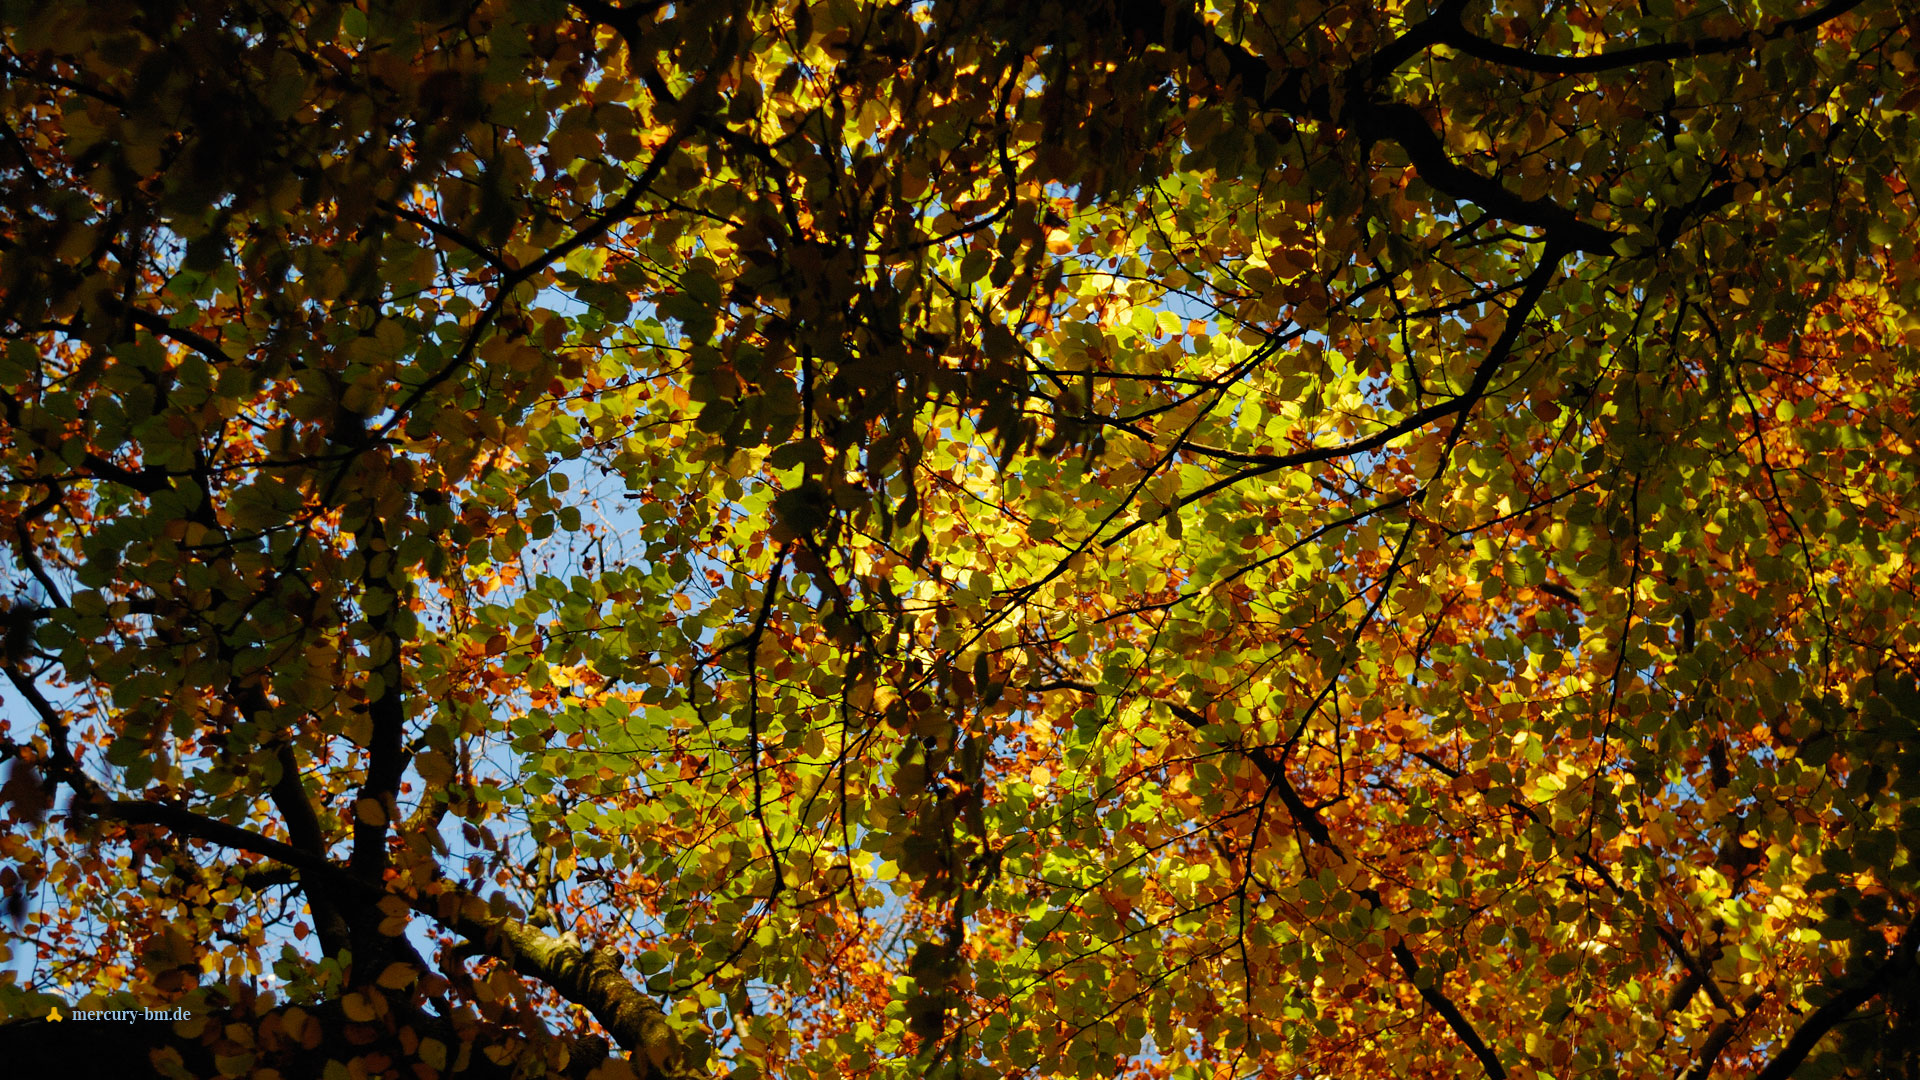 Wallpaper Herbstkrone - Autumn Crown